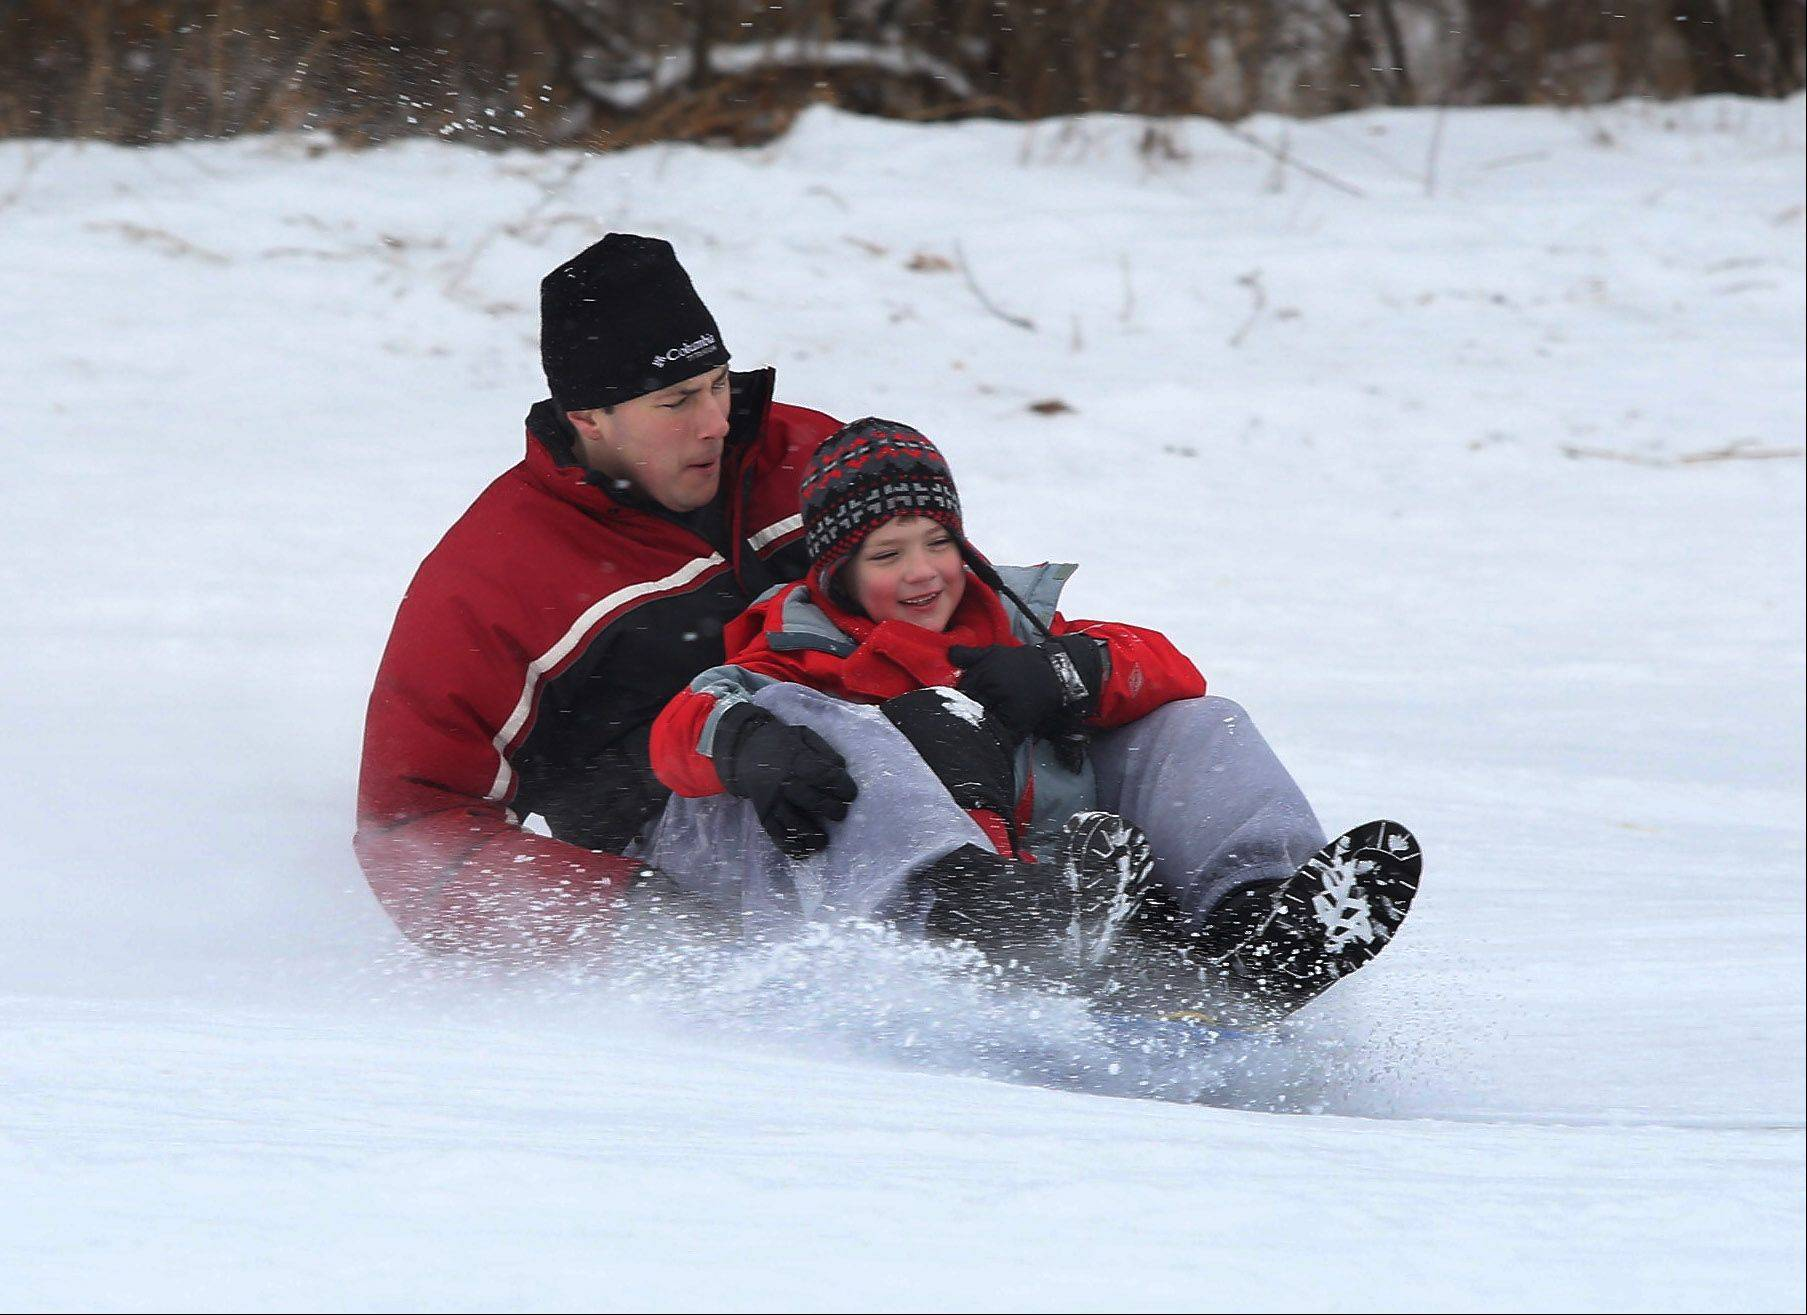 Jesse Walker of Libertyville sleds down the hill with his son, Joey, 7, at Adler Park in Libertyville on Thursday. The park features two sledding hills, an ice rink and a warming house during the winter months.